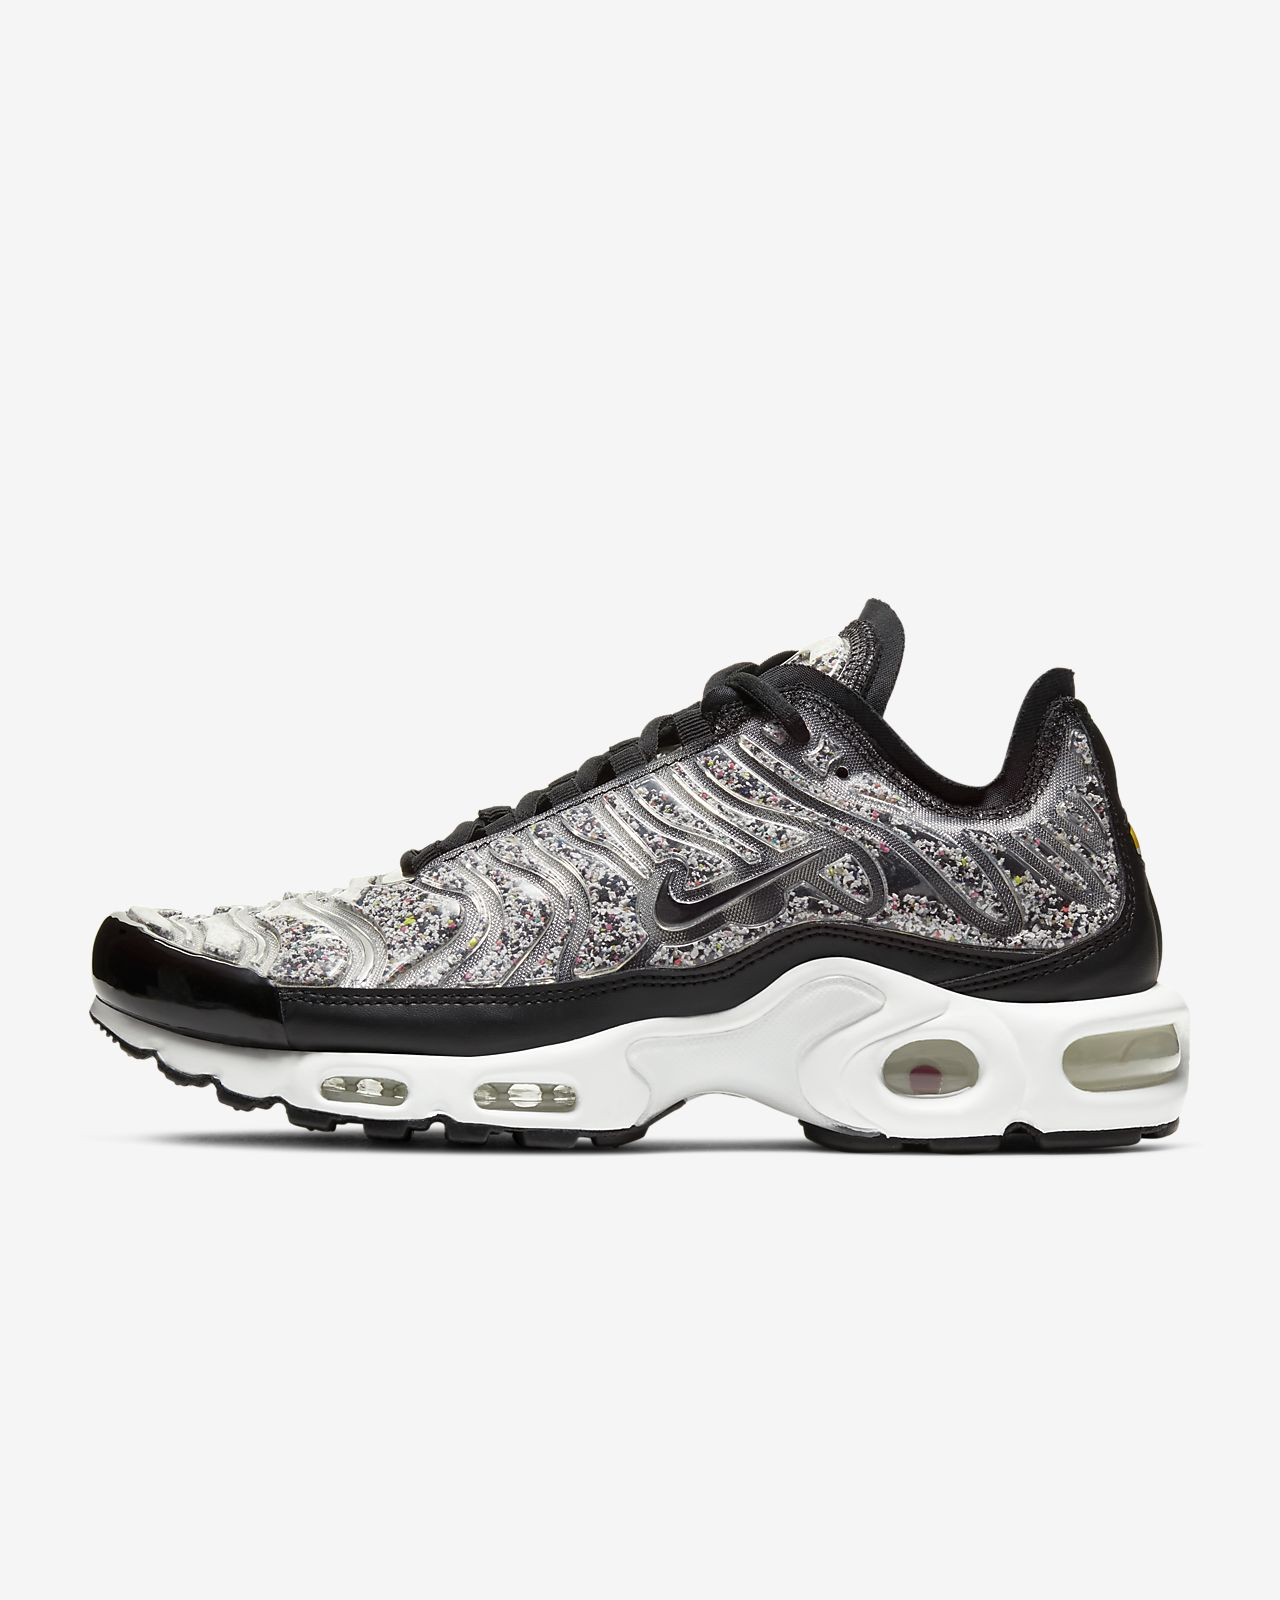 bike air max plus